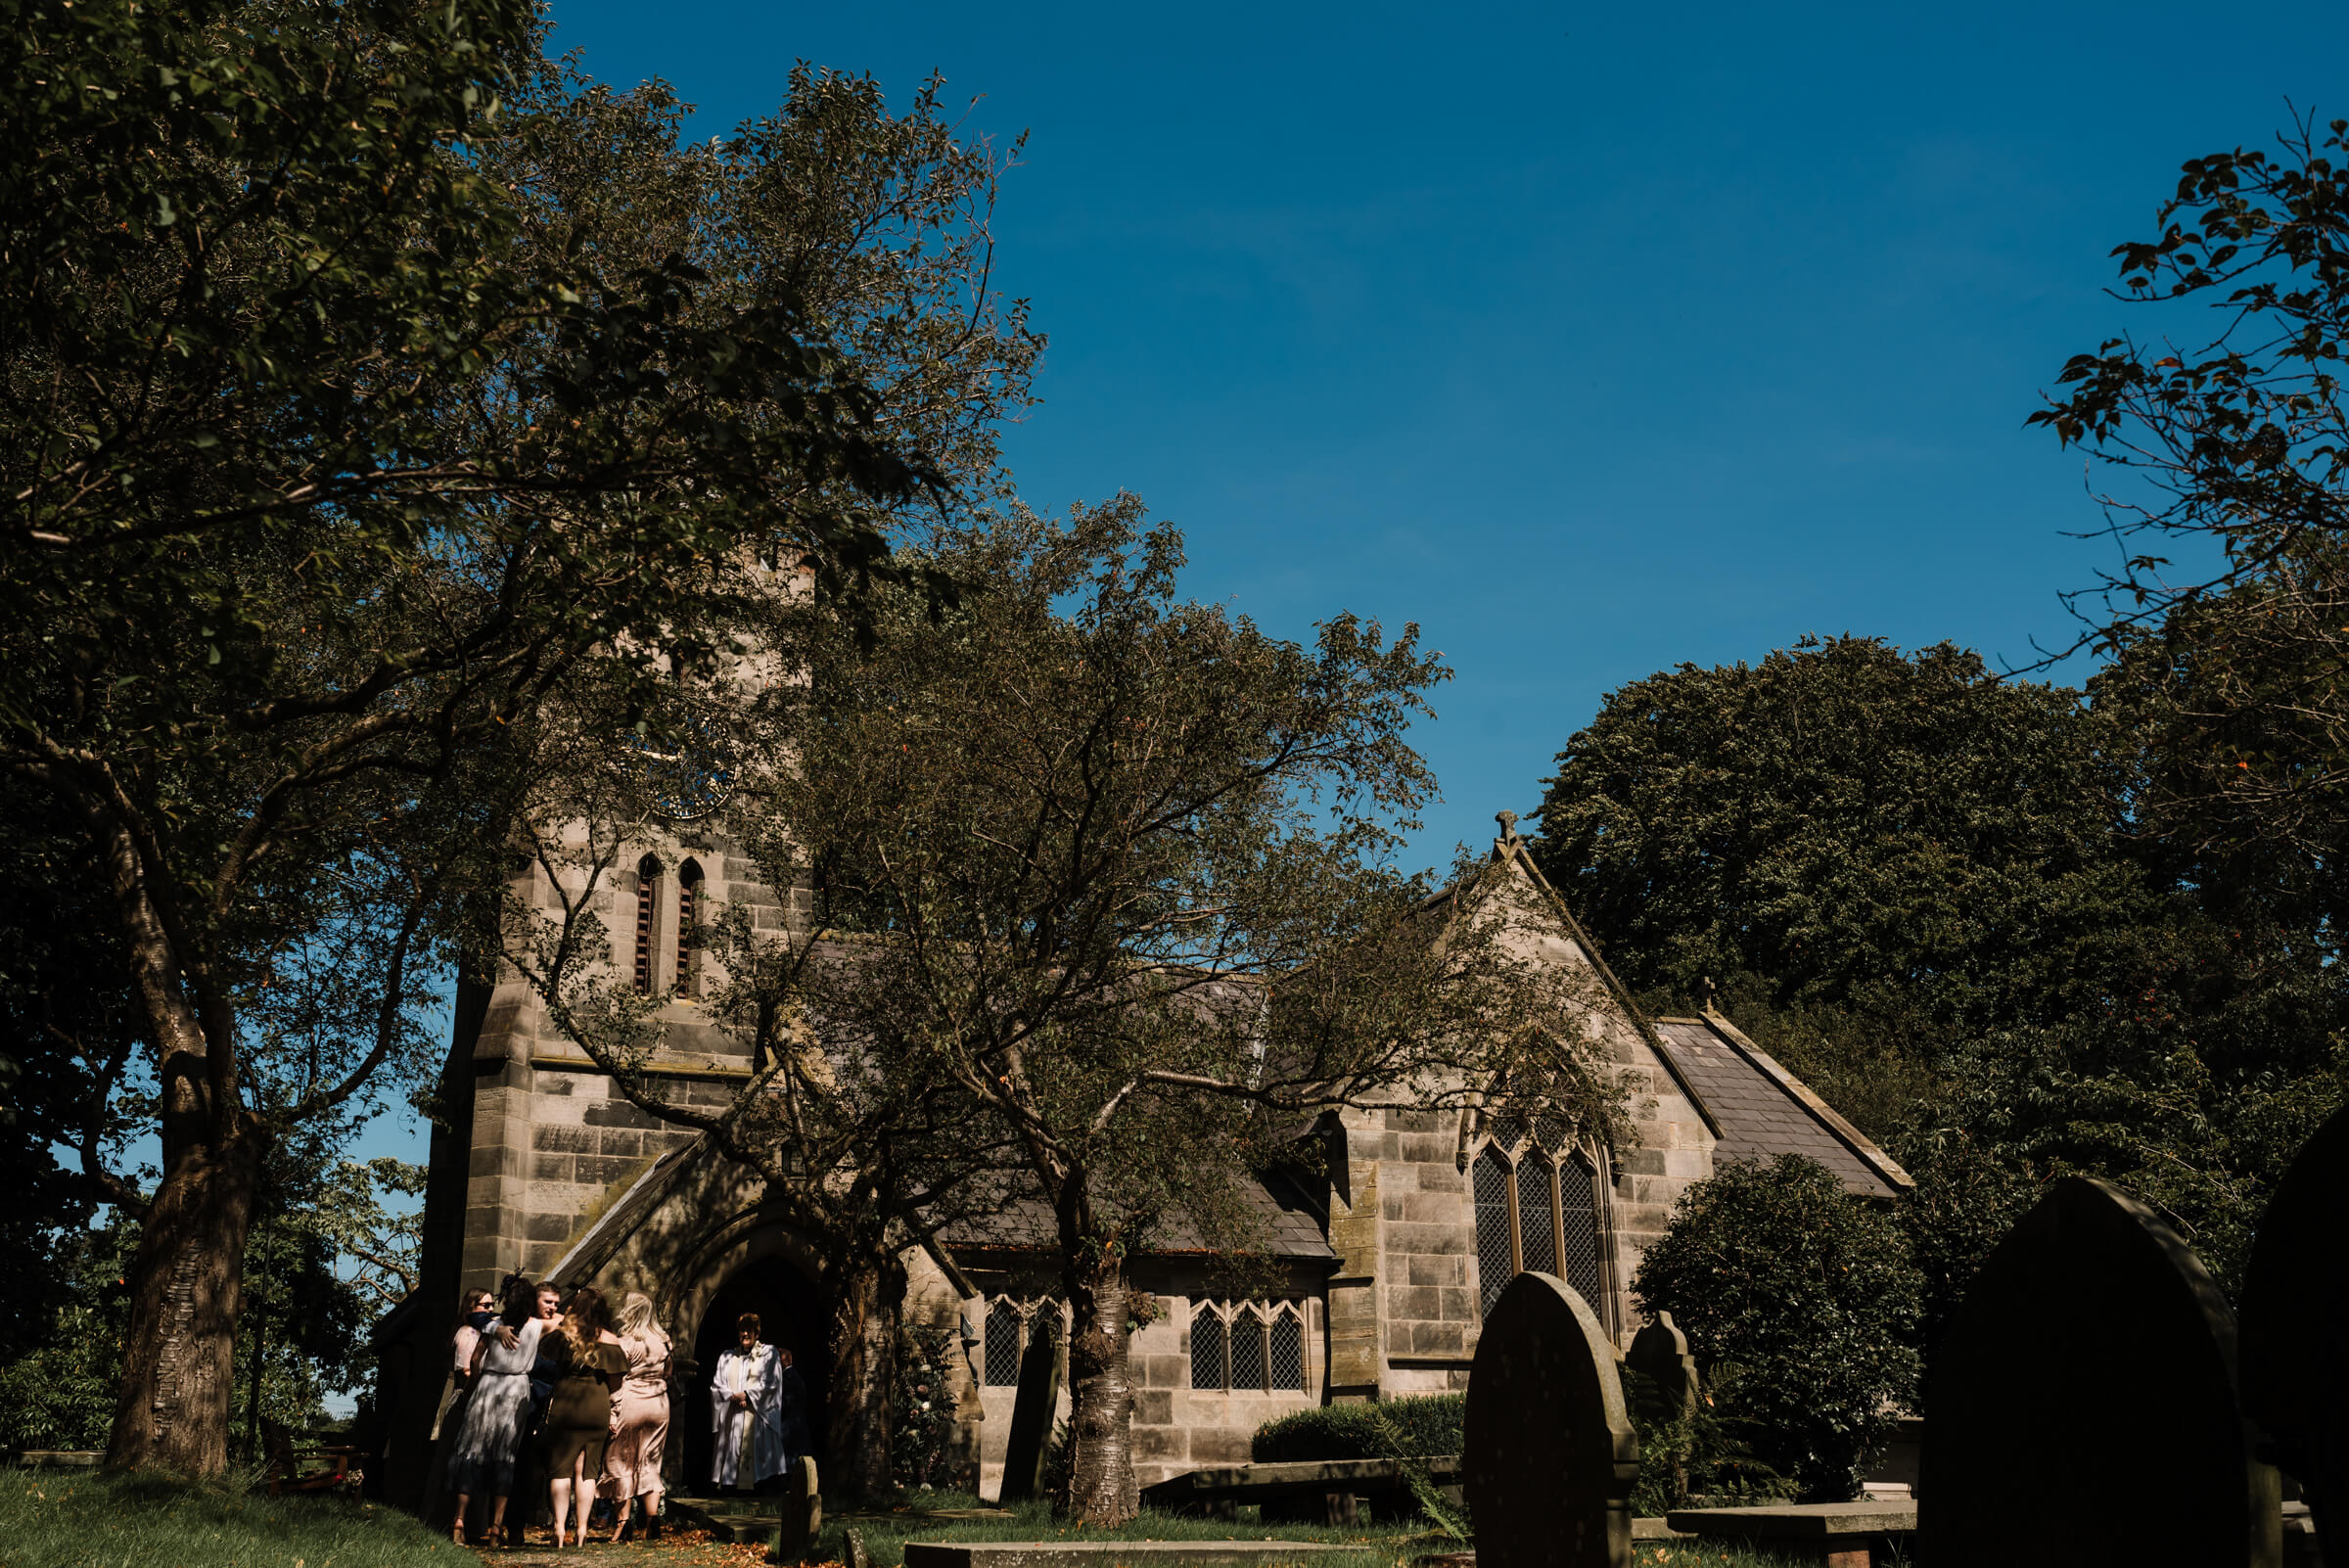 external photo of church and blue sky